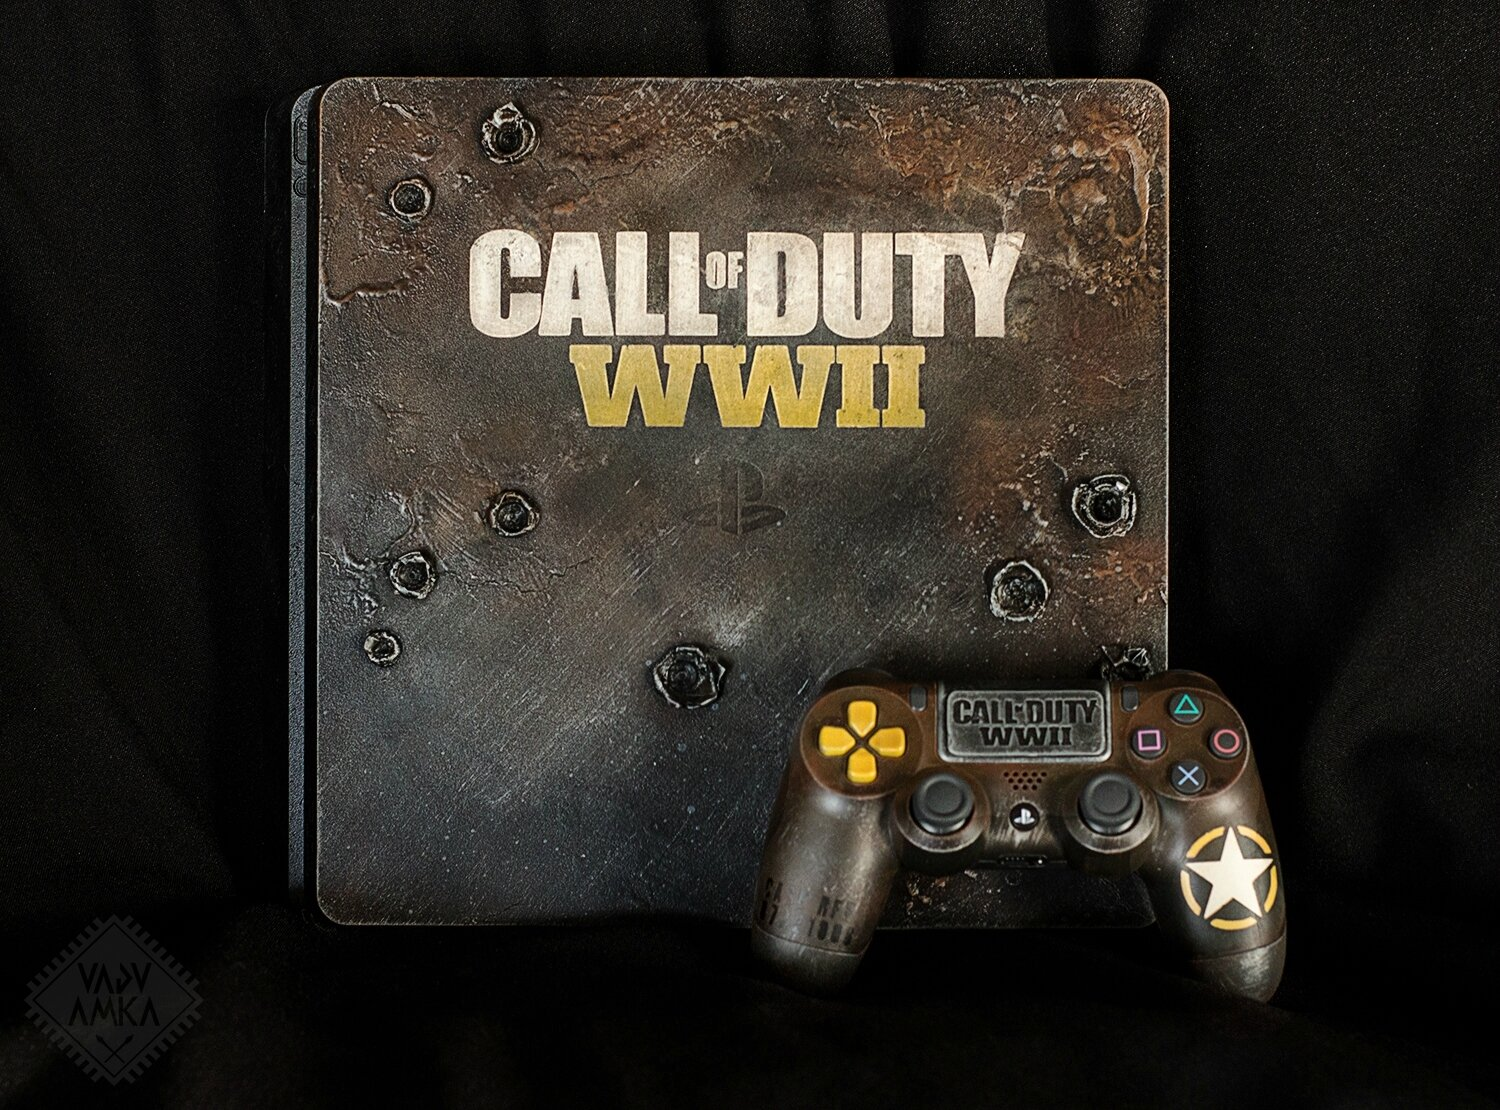 Call of Duty: WWII - Playstation 4 custom